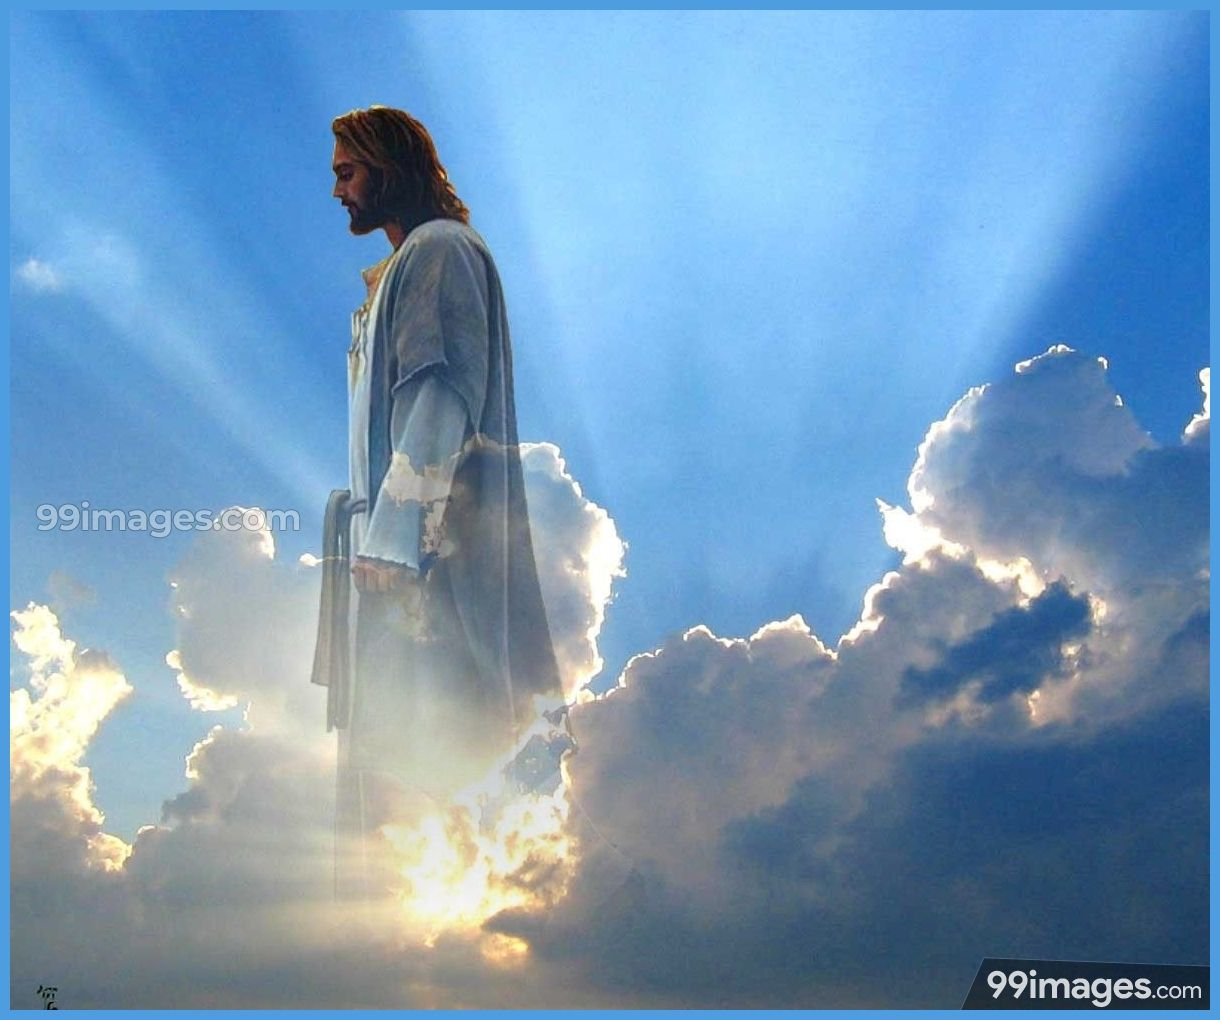 Jesus Christ Hd Wallpapers Images 1080p 1946 Jesuschrist God Christmas Jesus Pictures Jesus Christ Images Jesus Christ